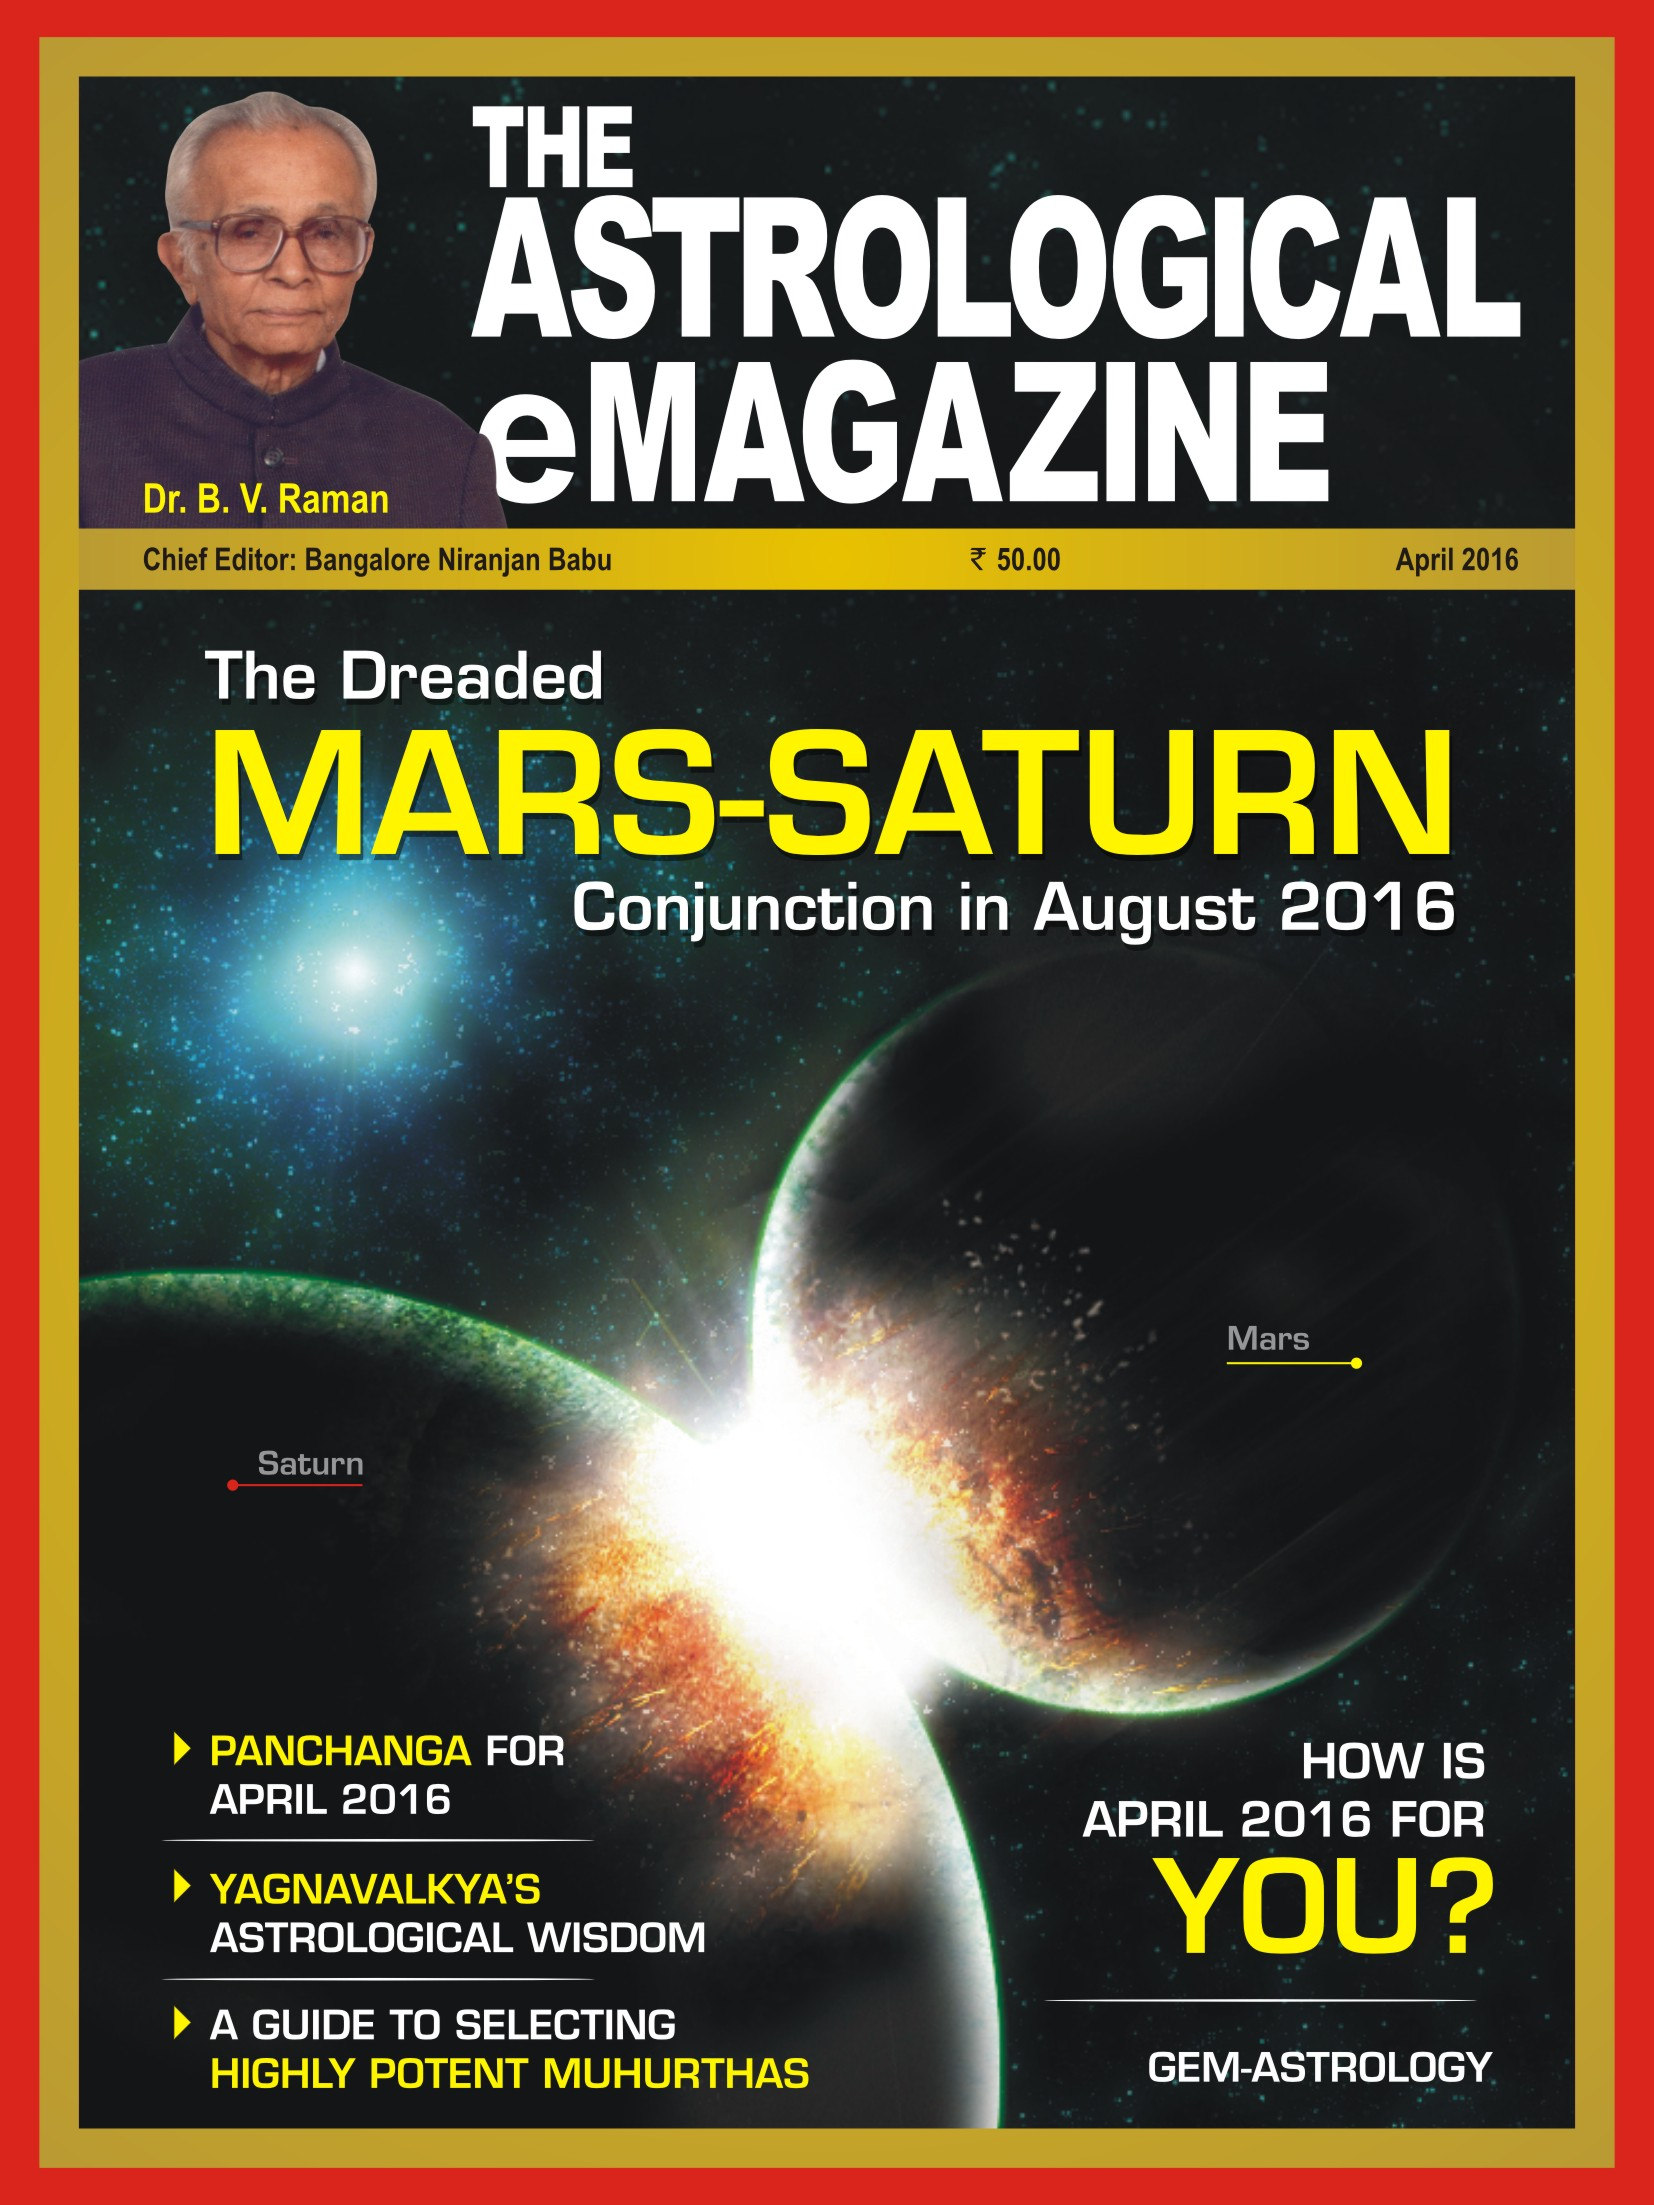 The Astrological eMagazine April 2016